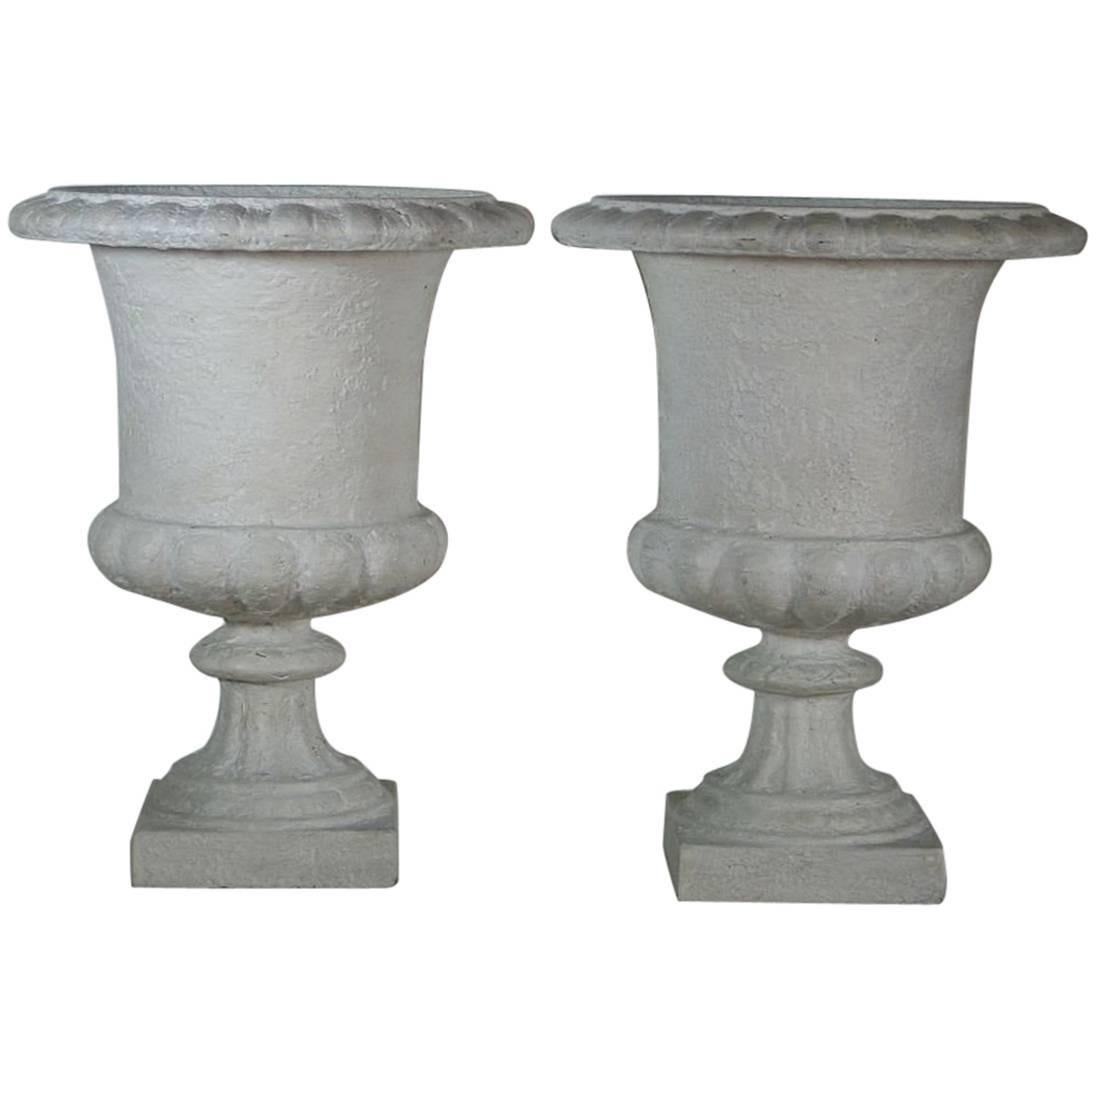 Pair Of French 19th Century Cast Iron Garden Urns, Vases For Sale